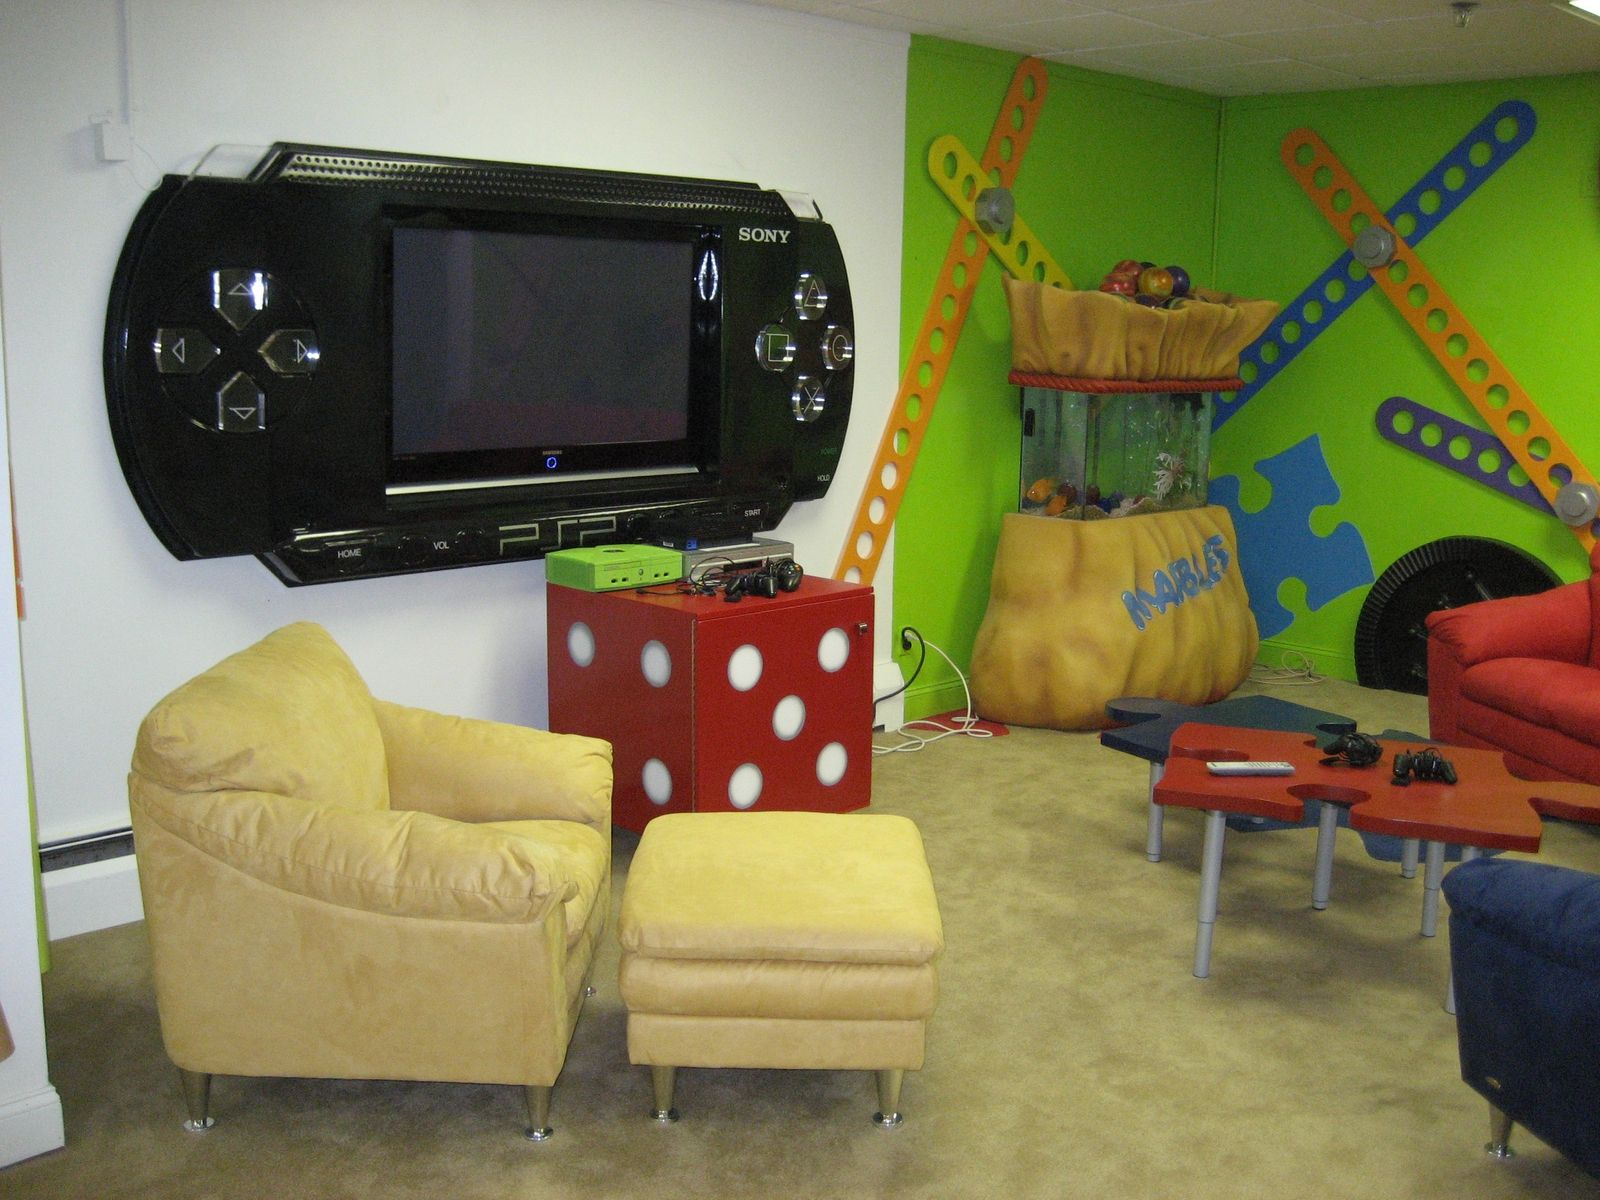 Here Are 21 Totally Awesome Video Game Room Ideas That Are More Than  Achievable To Recreate In Your Own Home, Giving You The Ultimate Gaming  Paradise . Part 54